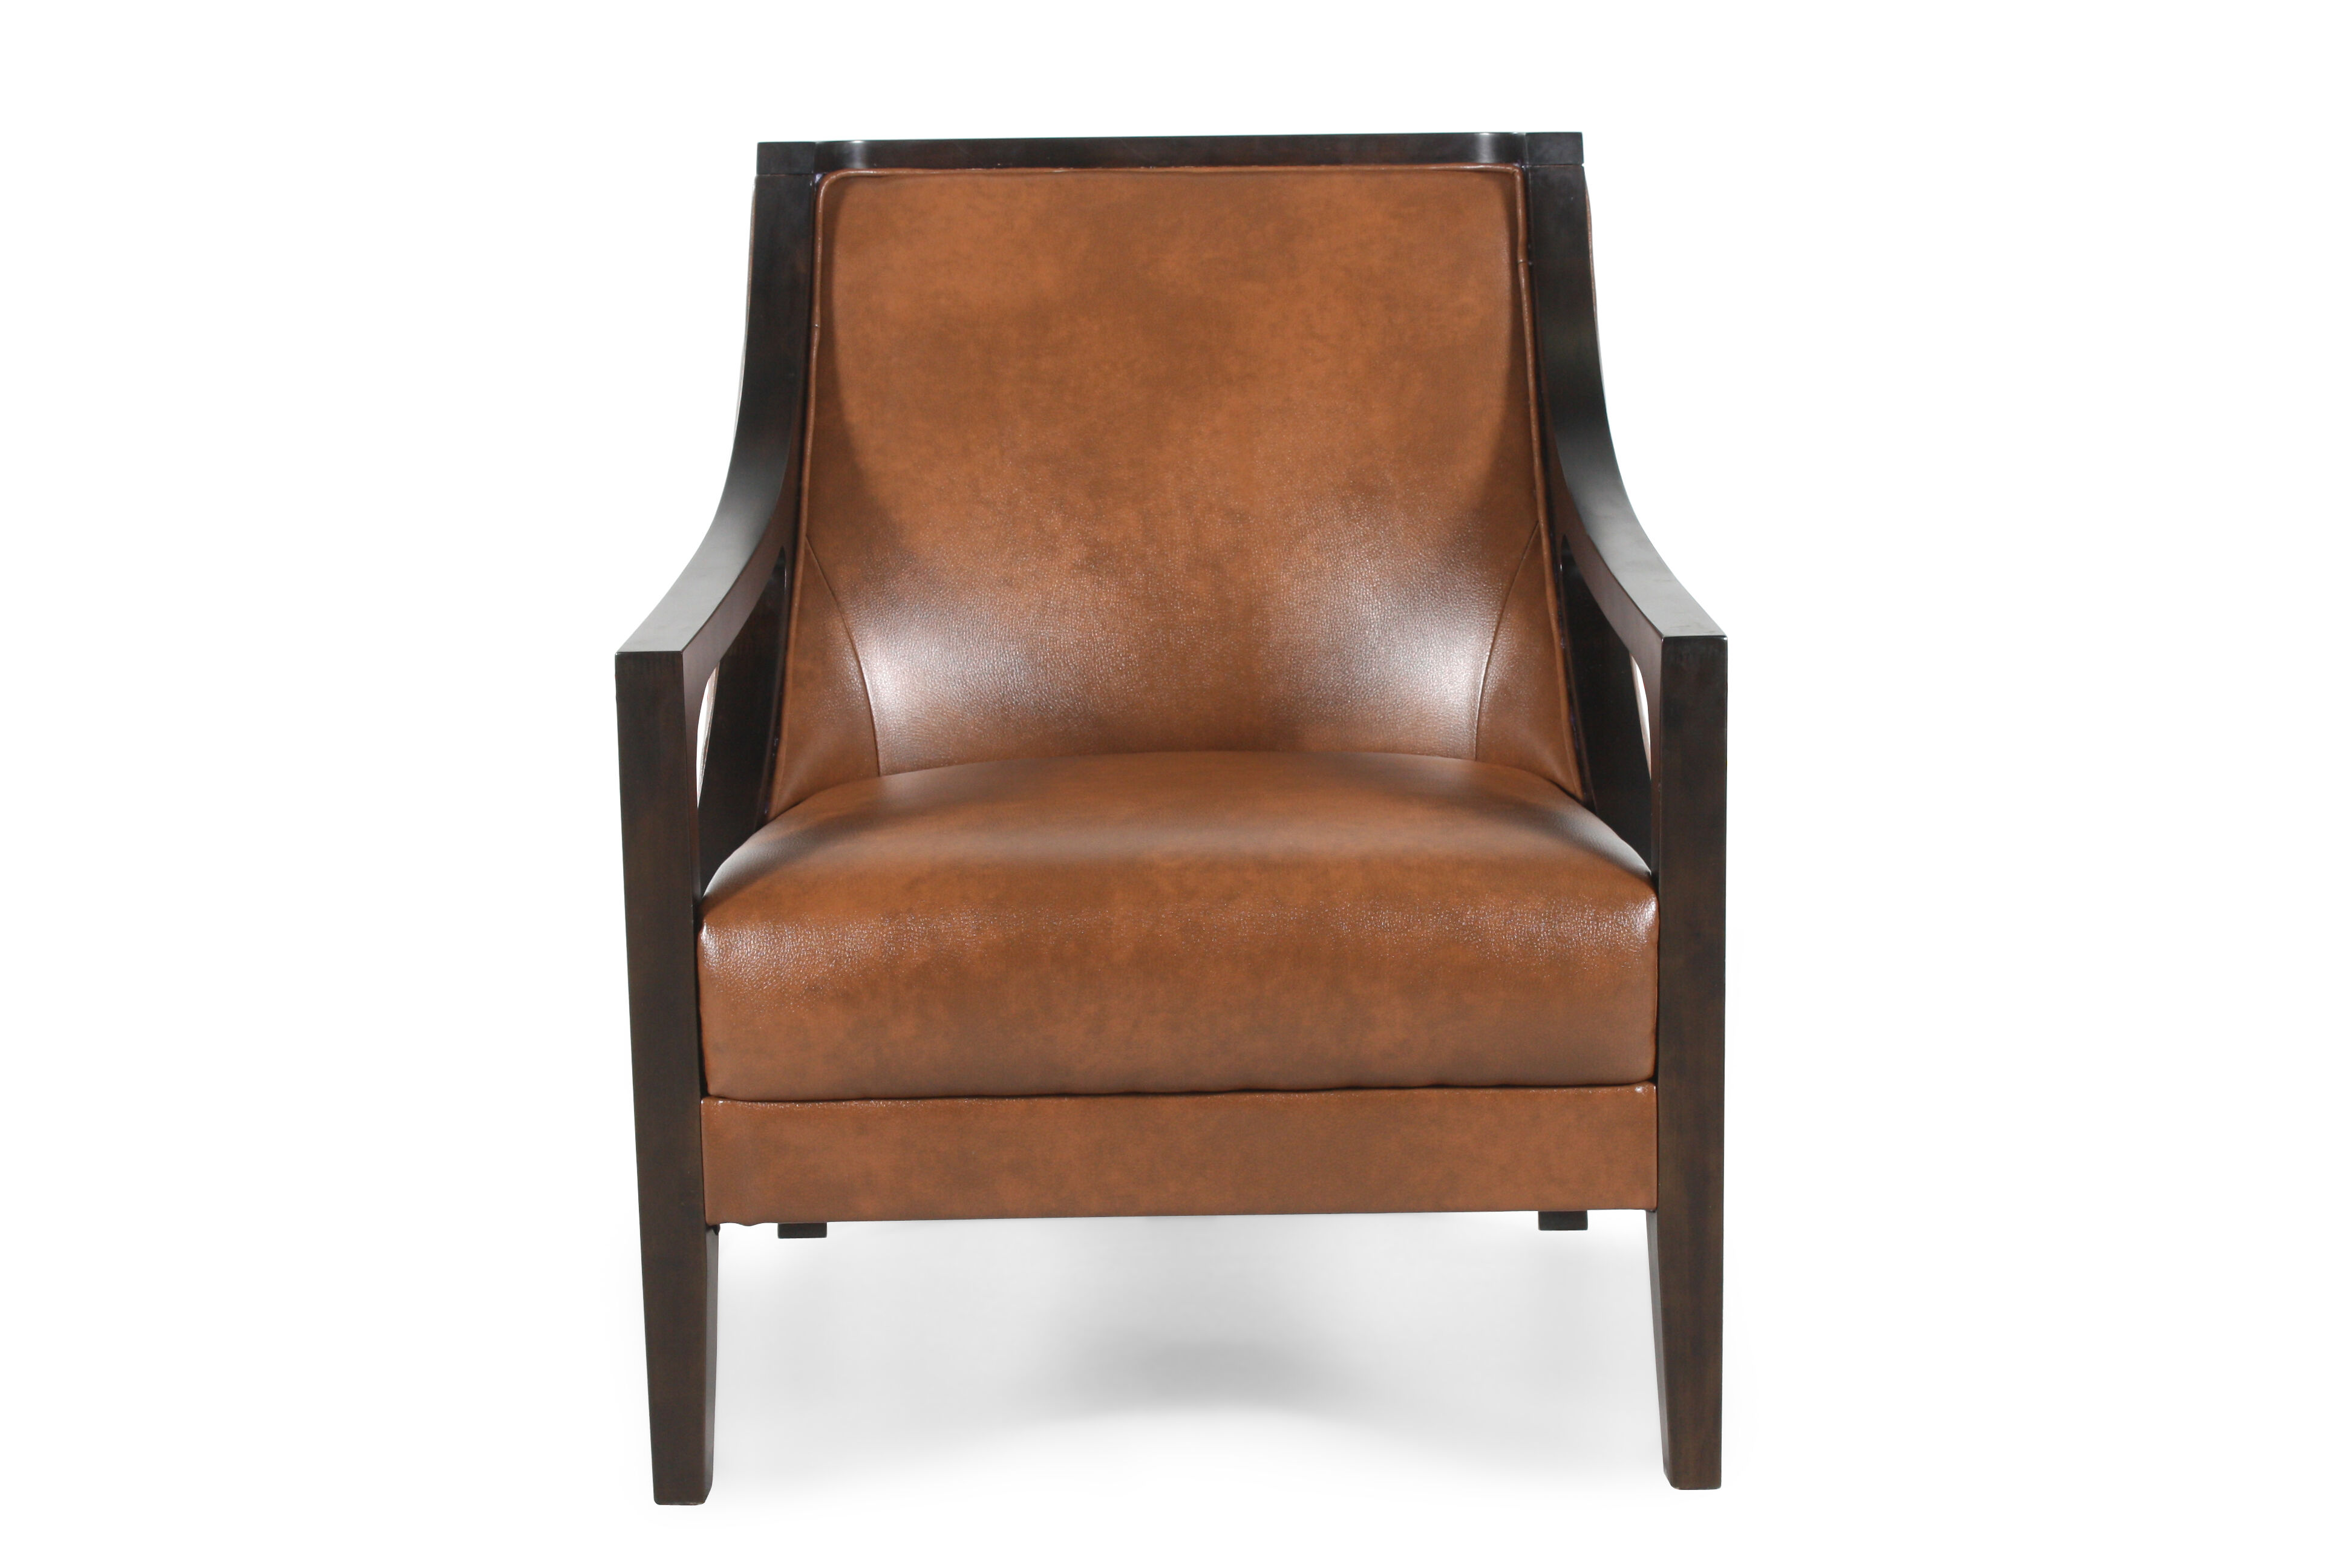 Saddle Chairs Contemporary 27 5 Quot Chair In Saddle Brown Mathis Brothers